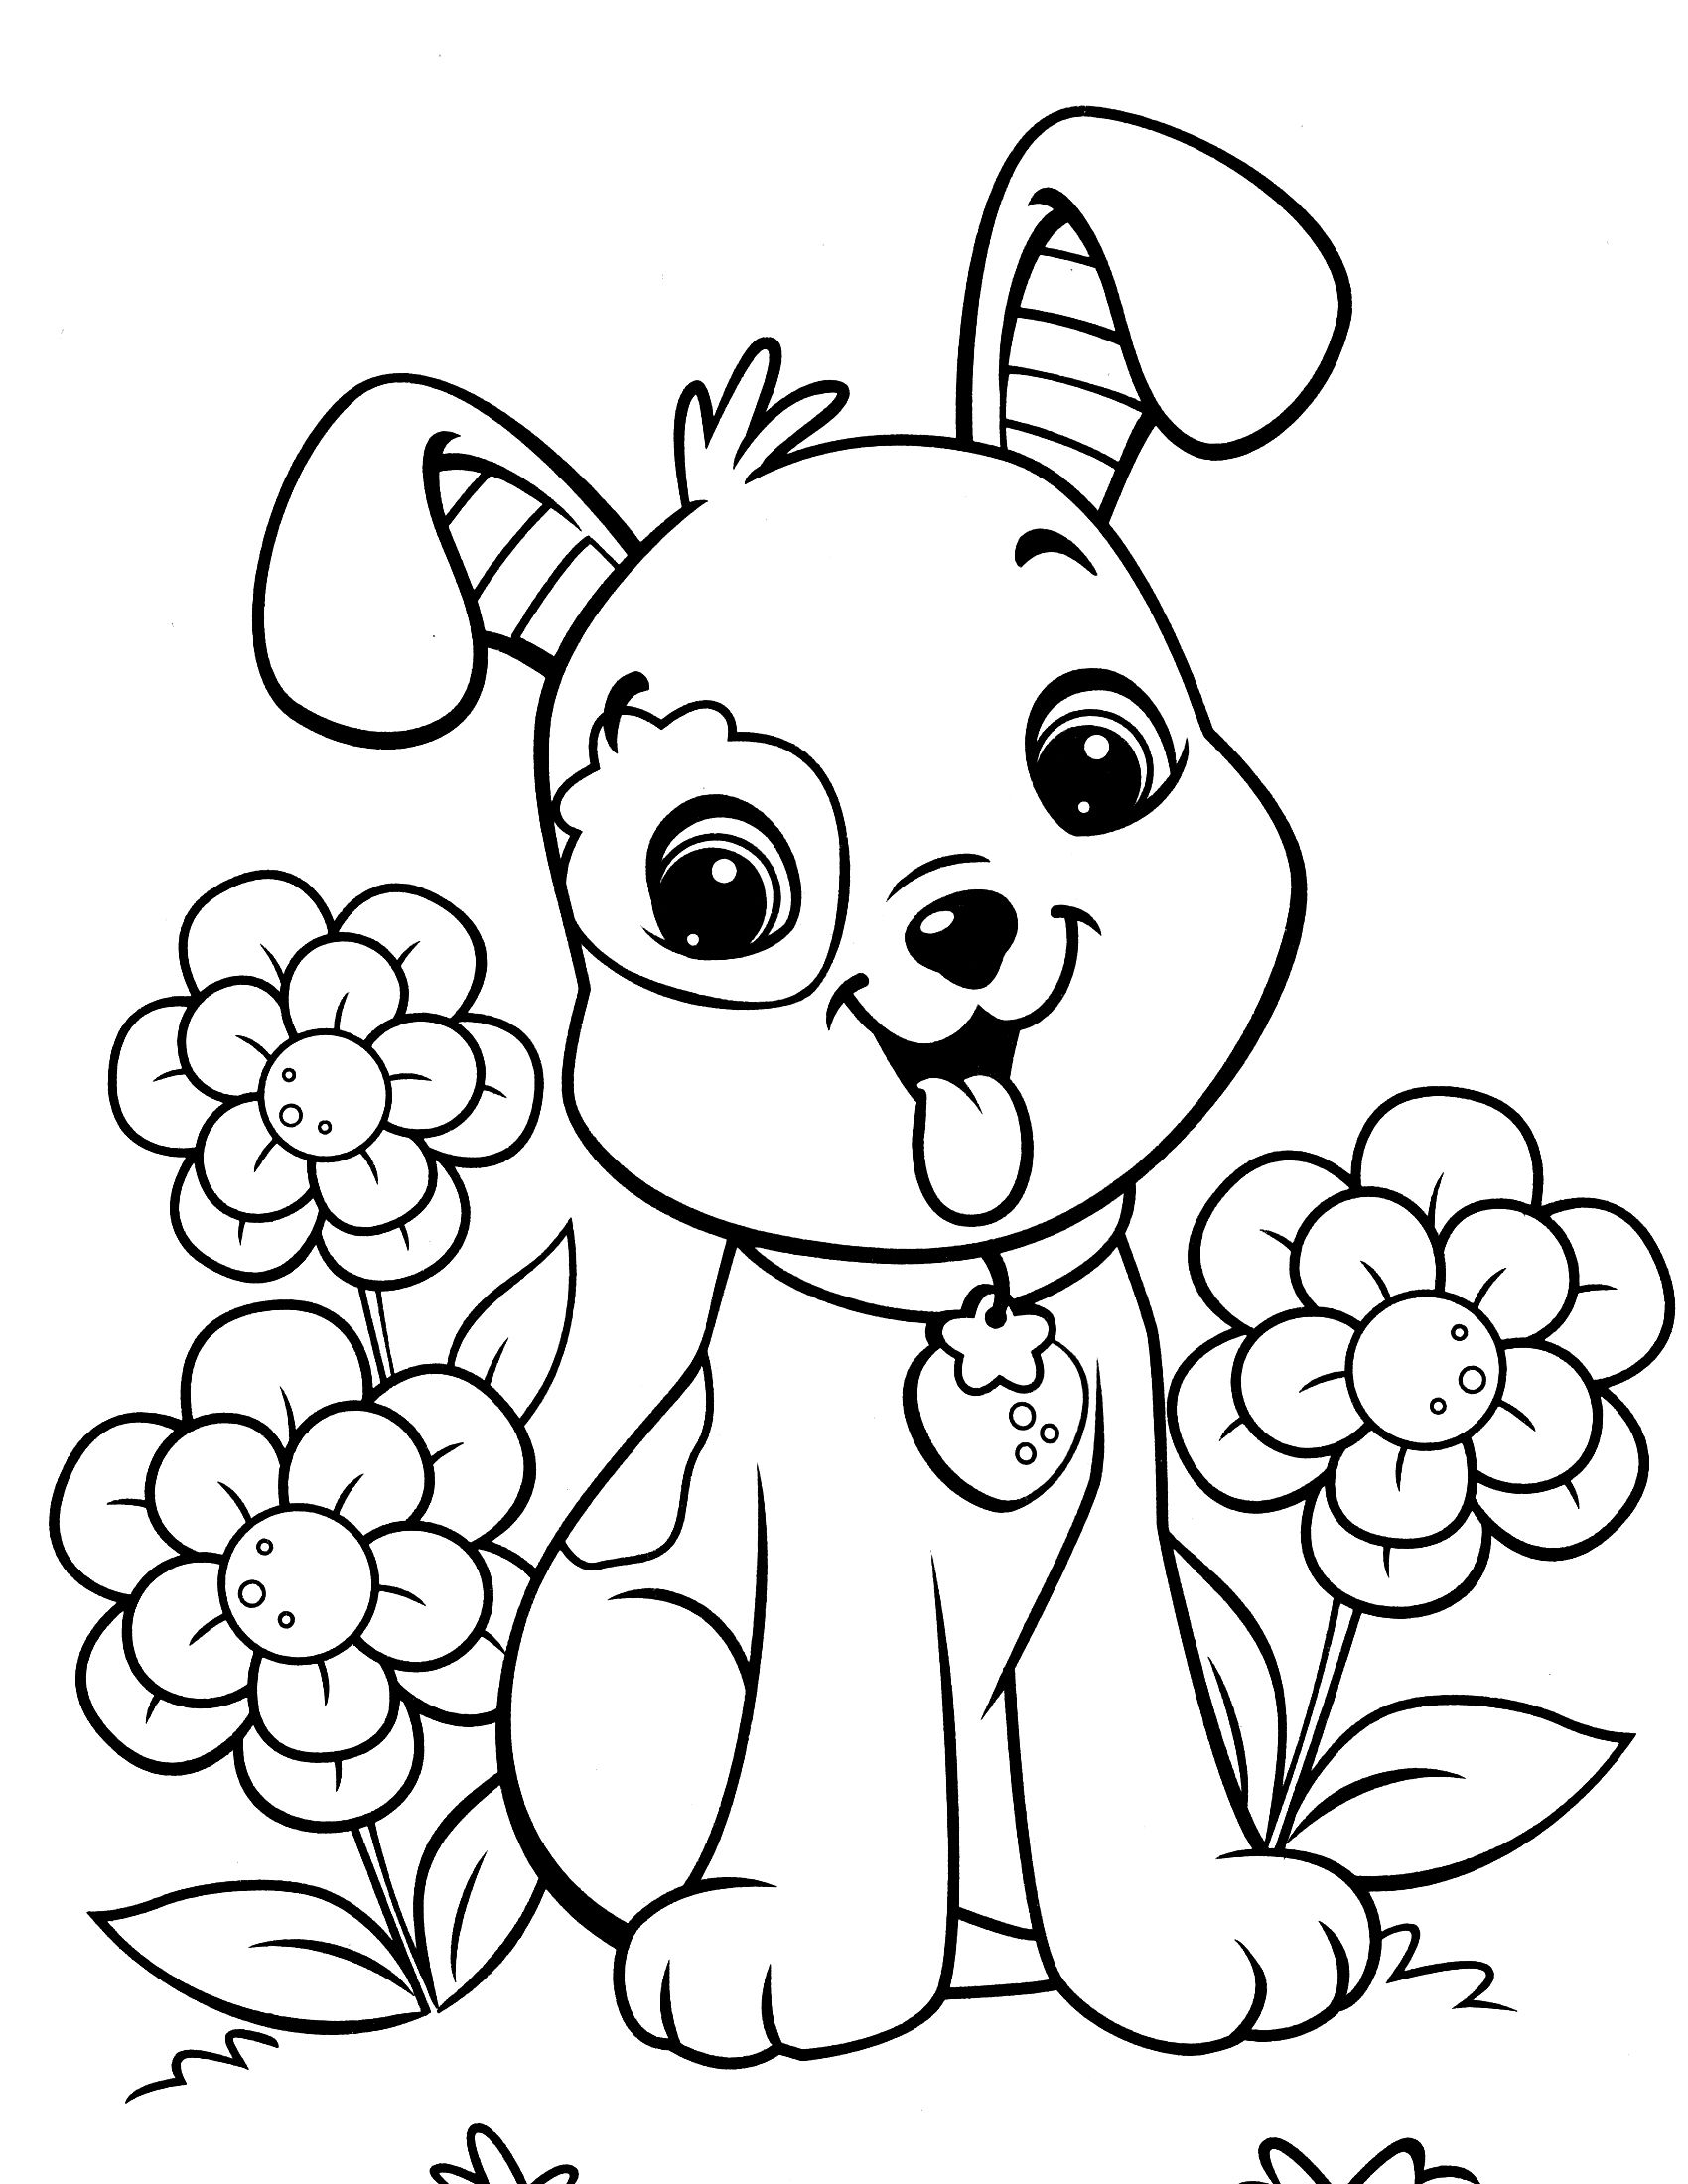 You And Your Dog Tips For A Great Relationship Puppy Coloring